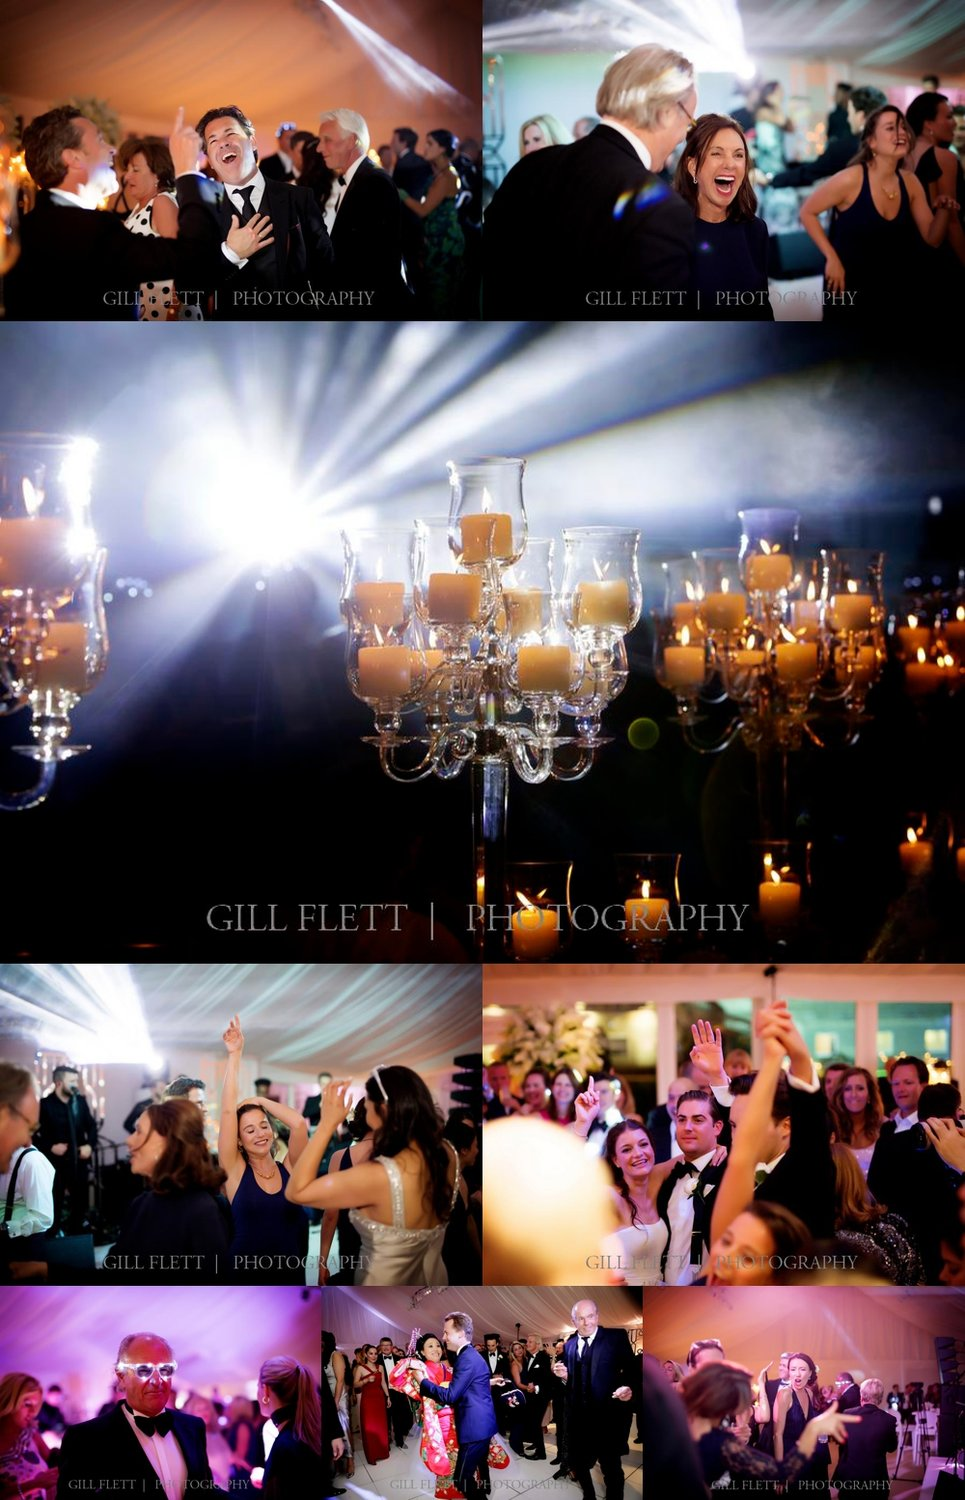 party-candles-wrotham-black-tie-wedding-gillflett-photo_img_0027.jpg